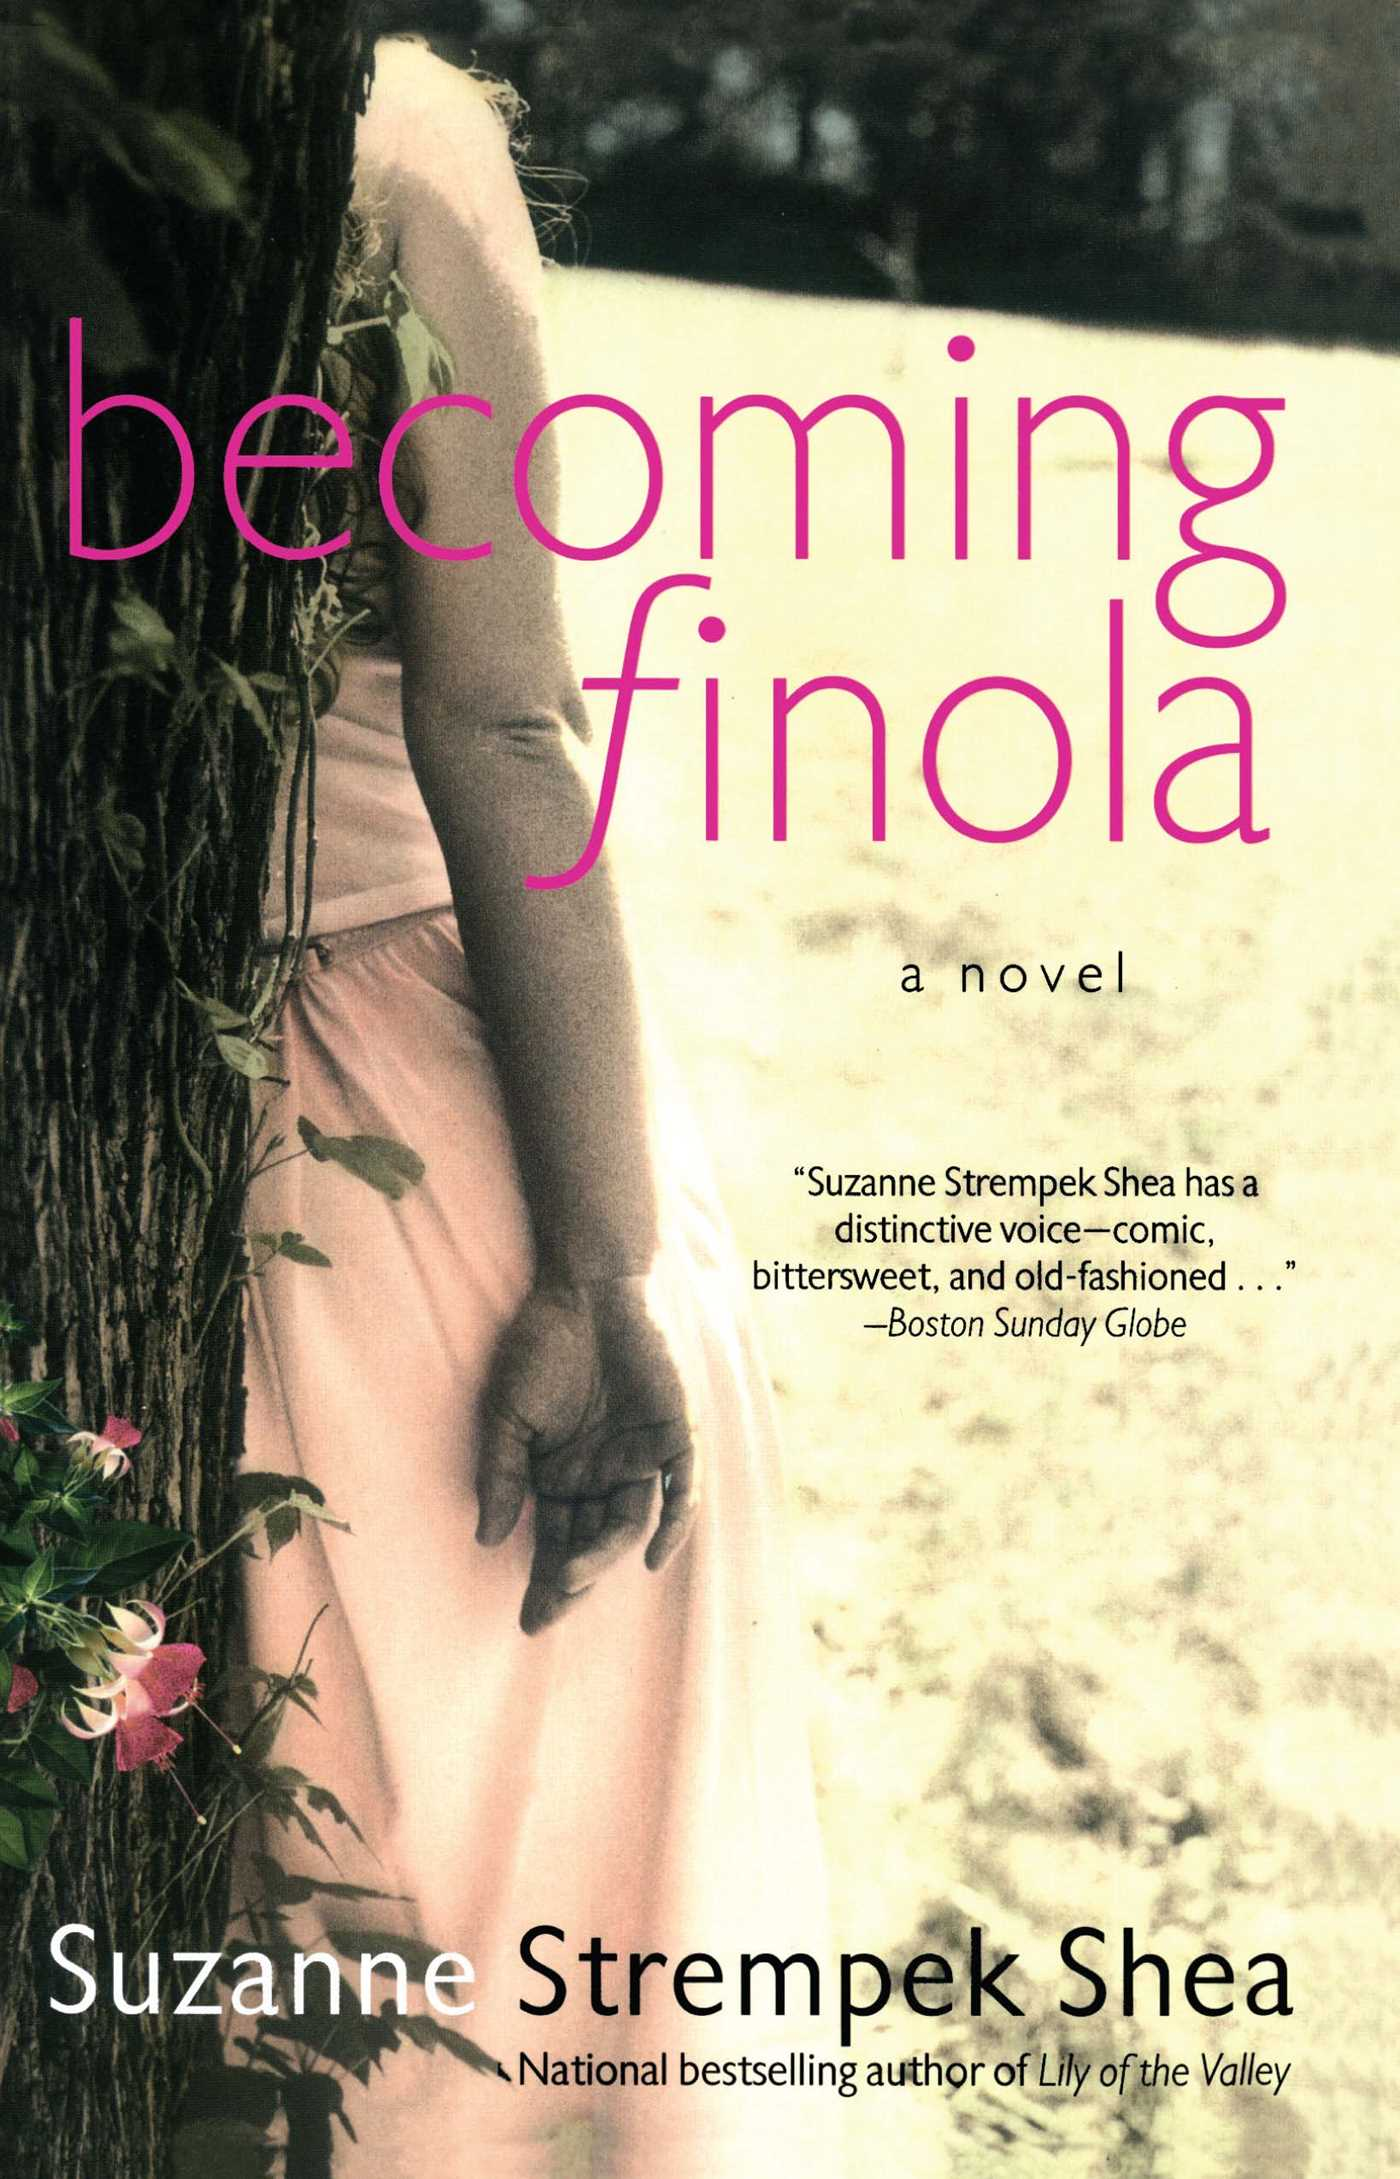 Becoming-finola-9781439122167_hr